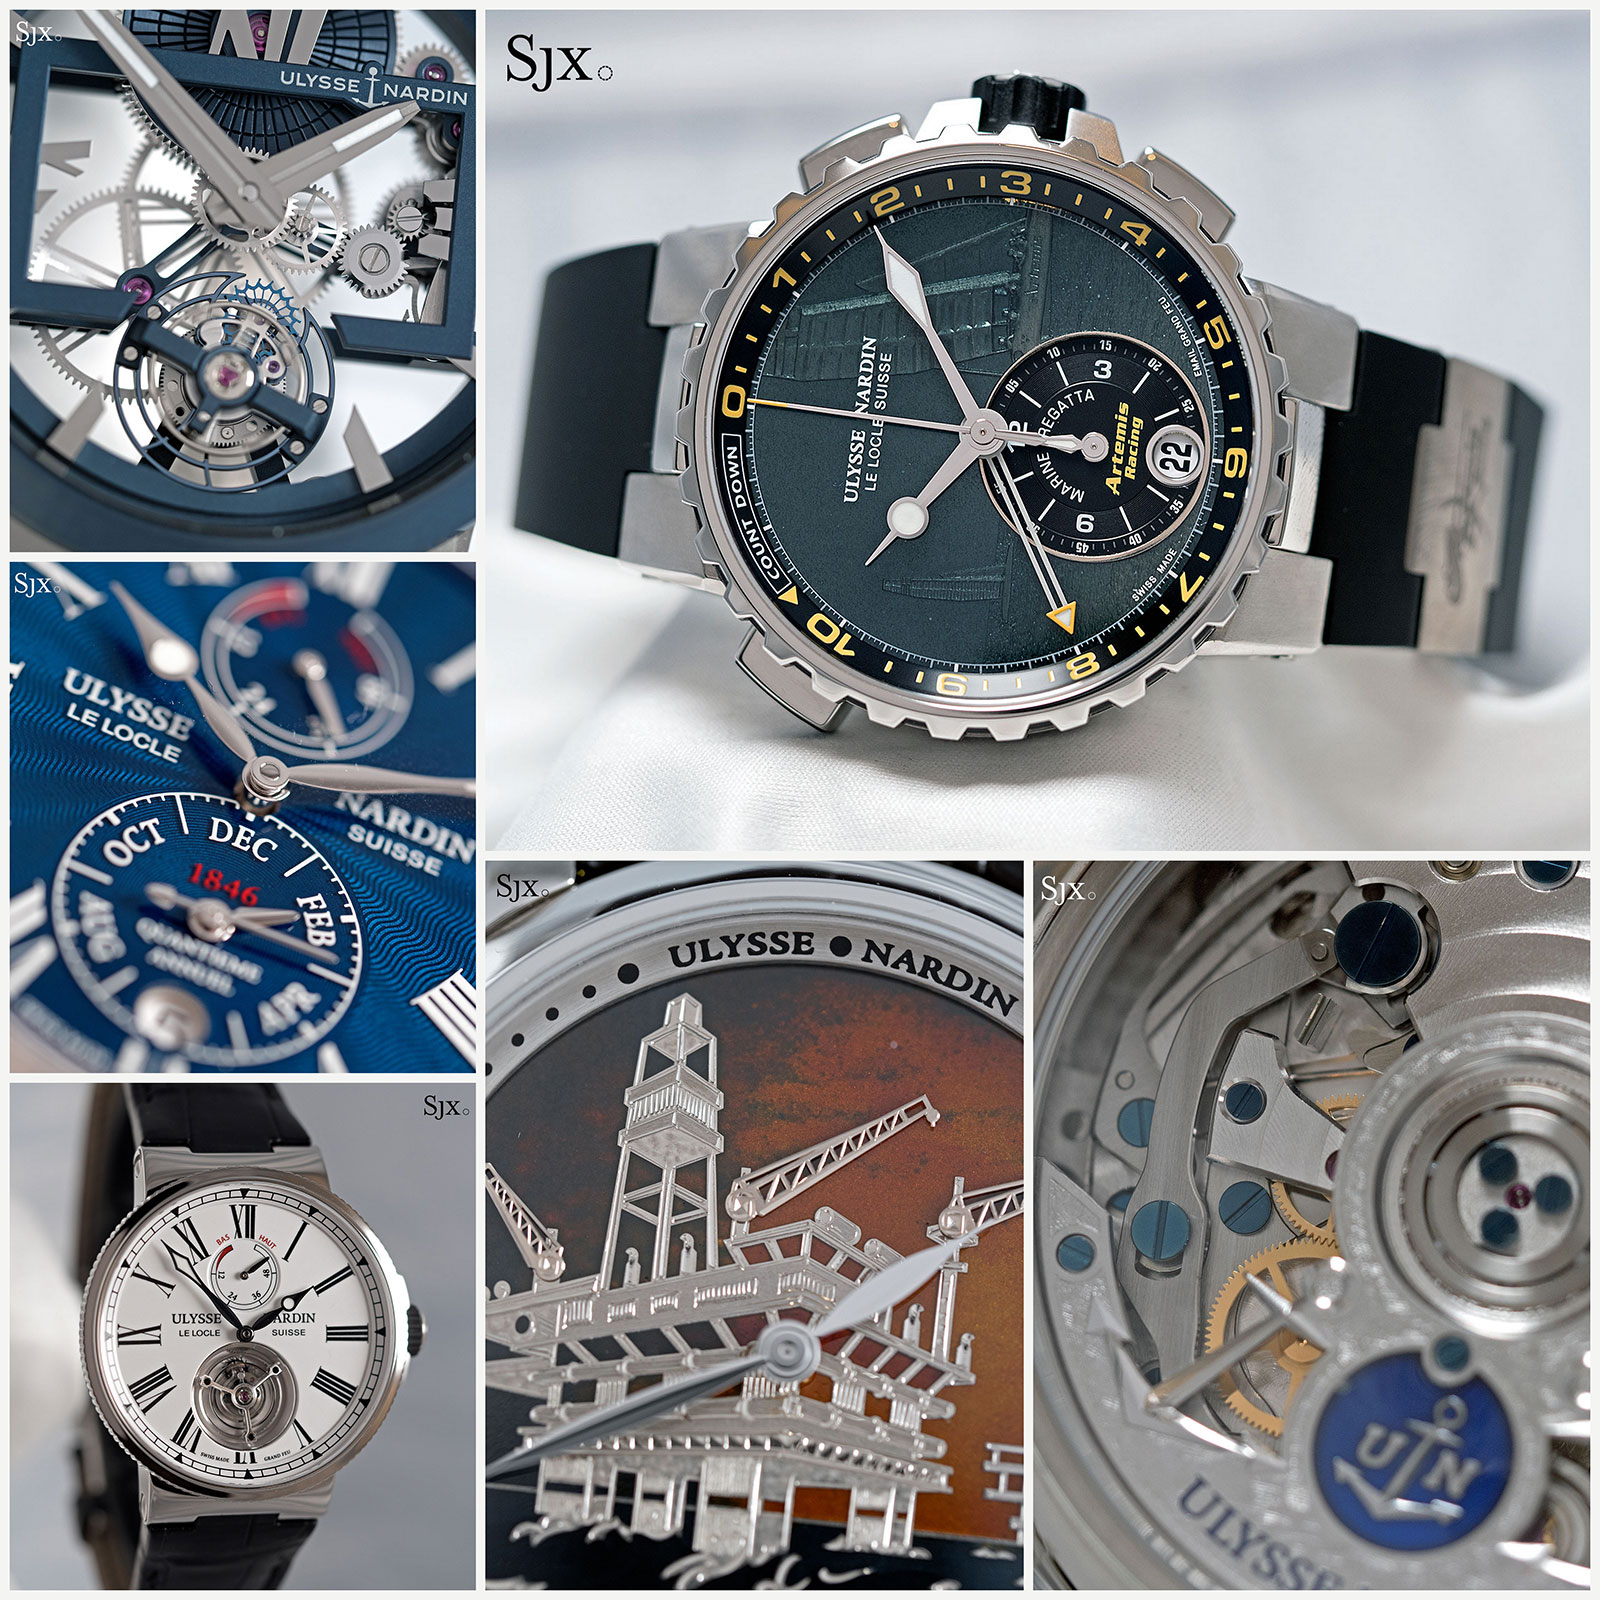 straps bands this band colors military and originally a styling gentleman nato in nylon the your used gentlemanual plethora of watch made price watches is style its s for guide comes designs valued to blog